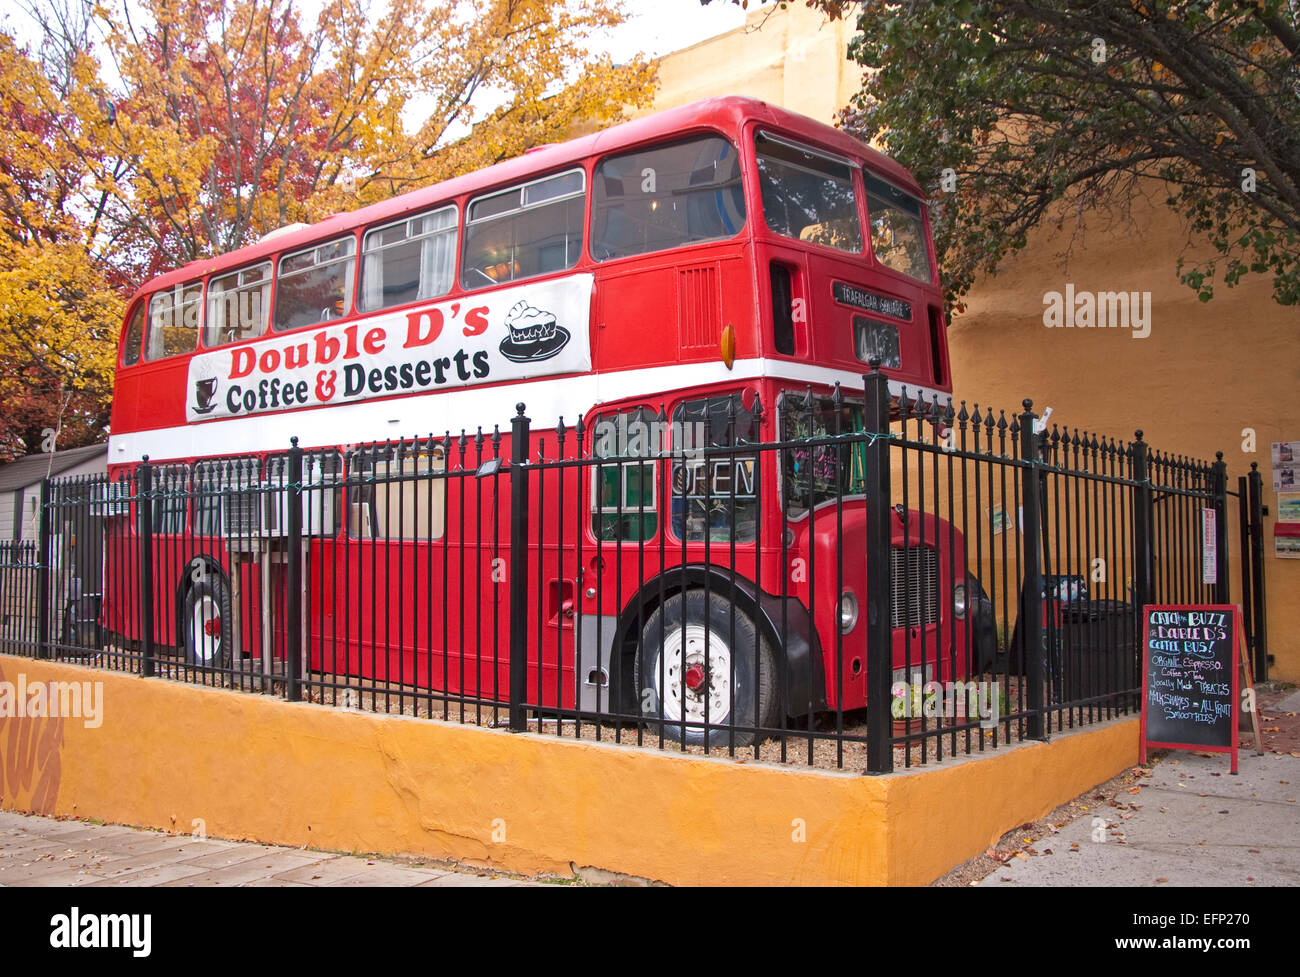 Double D's coffee shop in converted old London double decker bus in downtown Asheville, North Carolina. - Stock Image